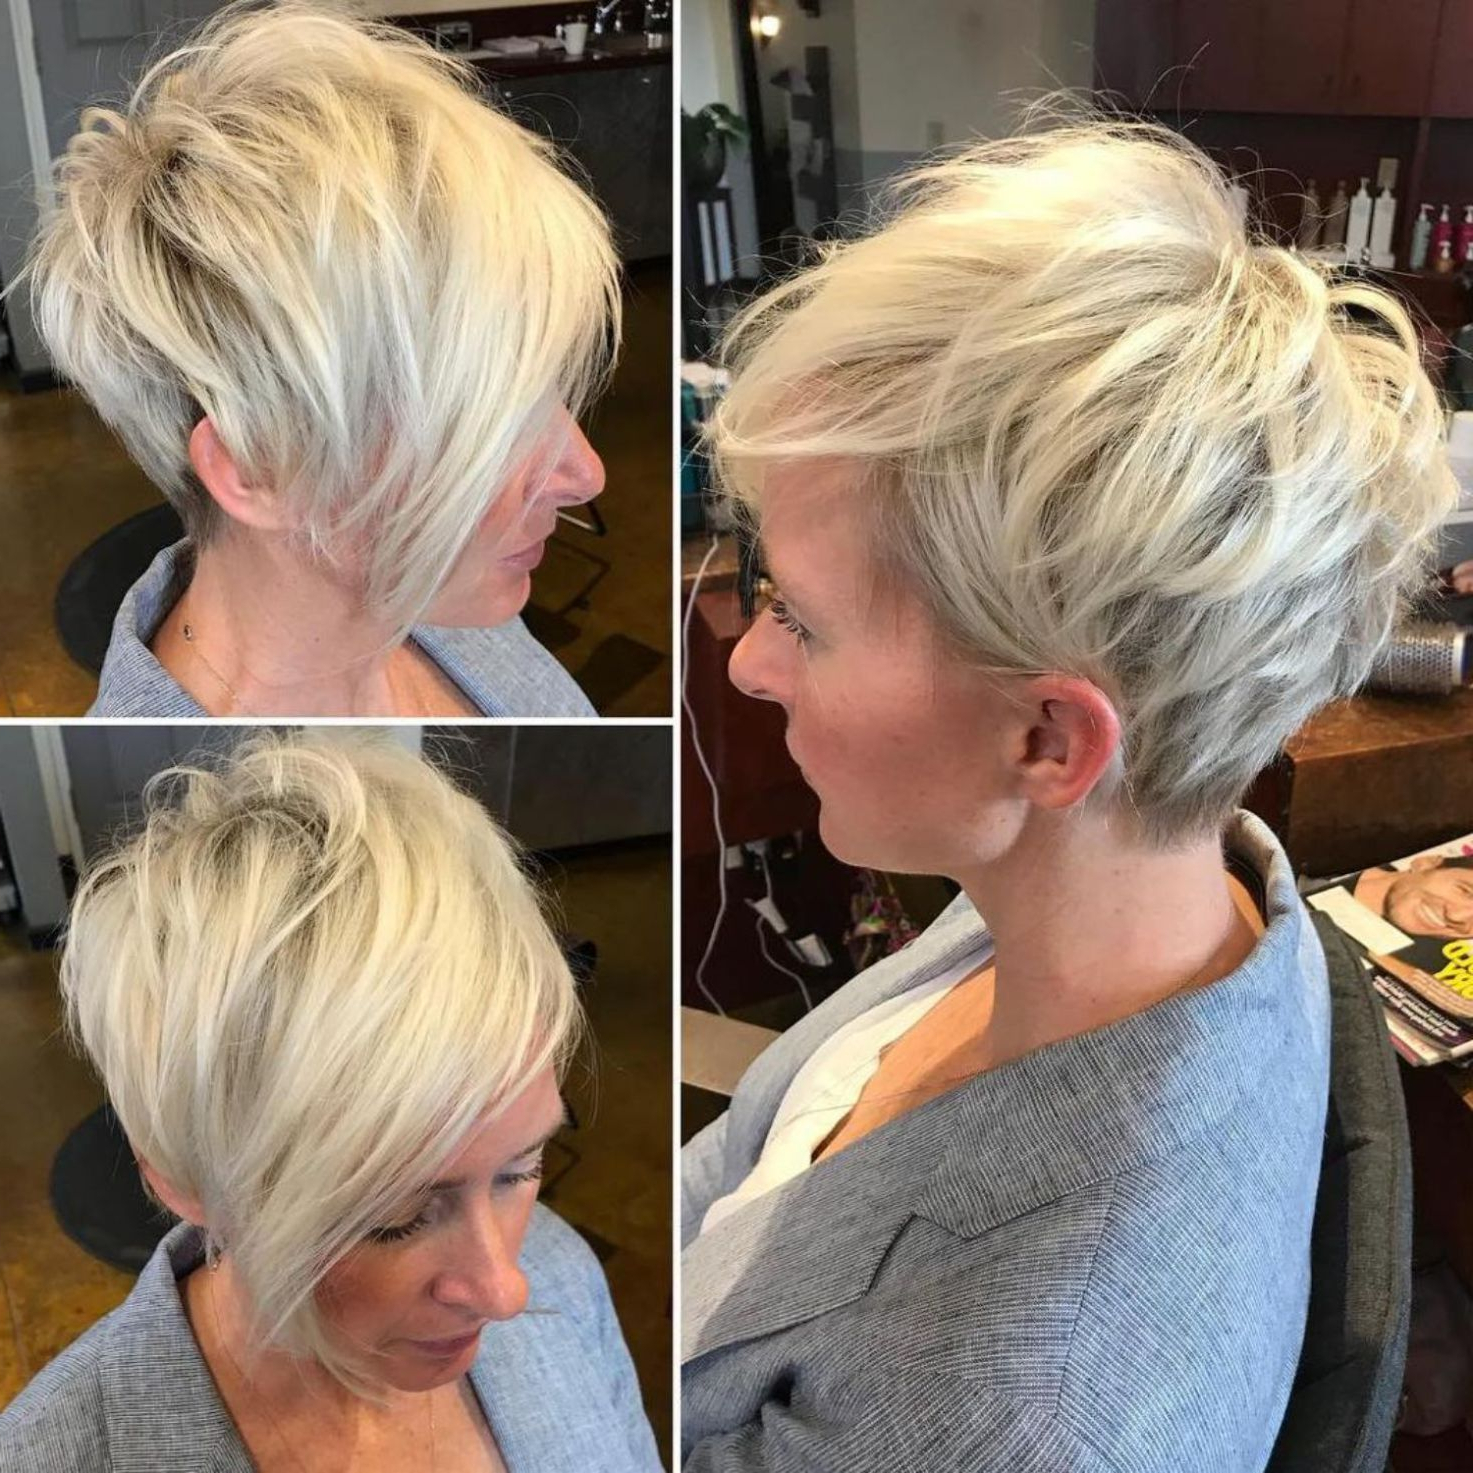 100 Mind Blowing Short Hairstyles For Fine Hair | Hair Dos For Disheveled Blonde Pixie Haircuts With Elongated Bangs (Gallery 1 of 20)